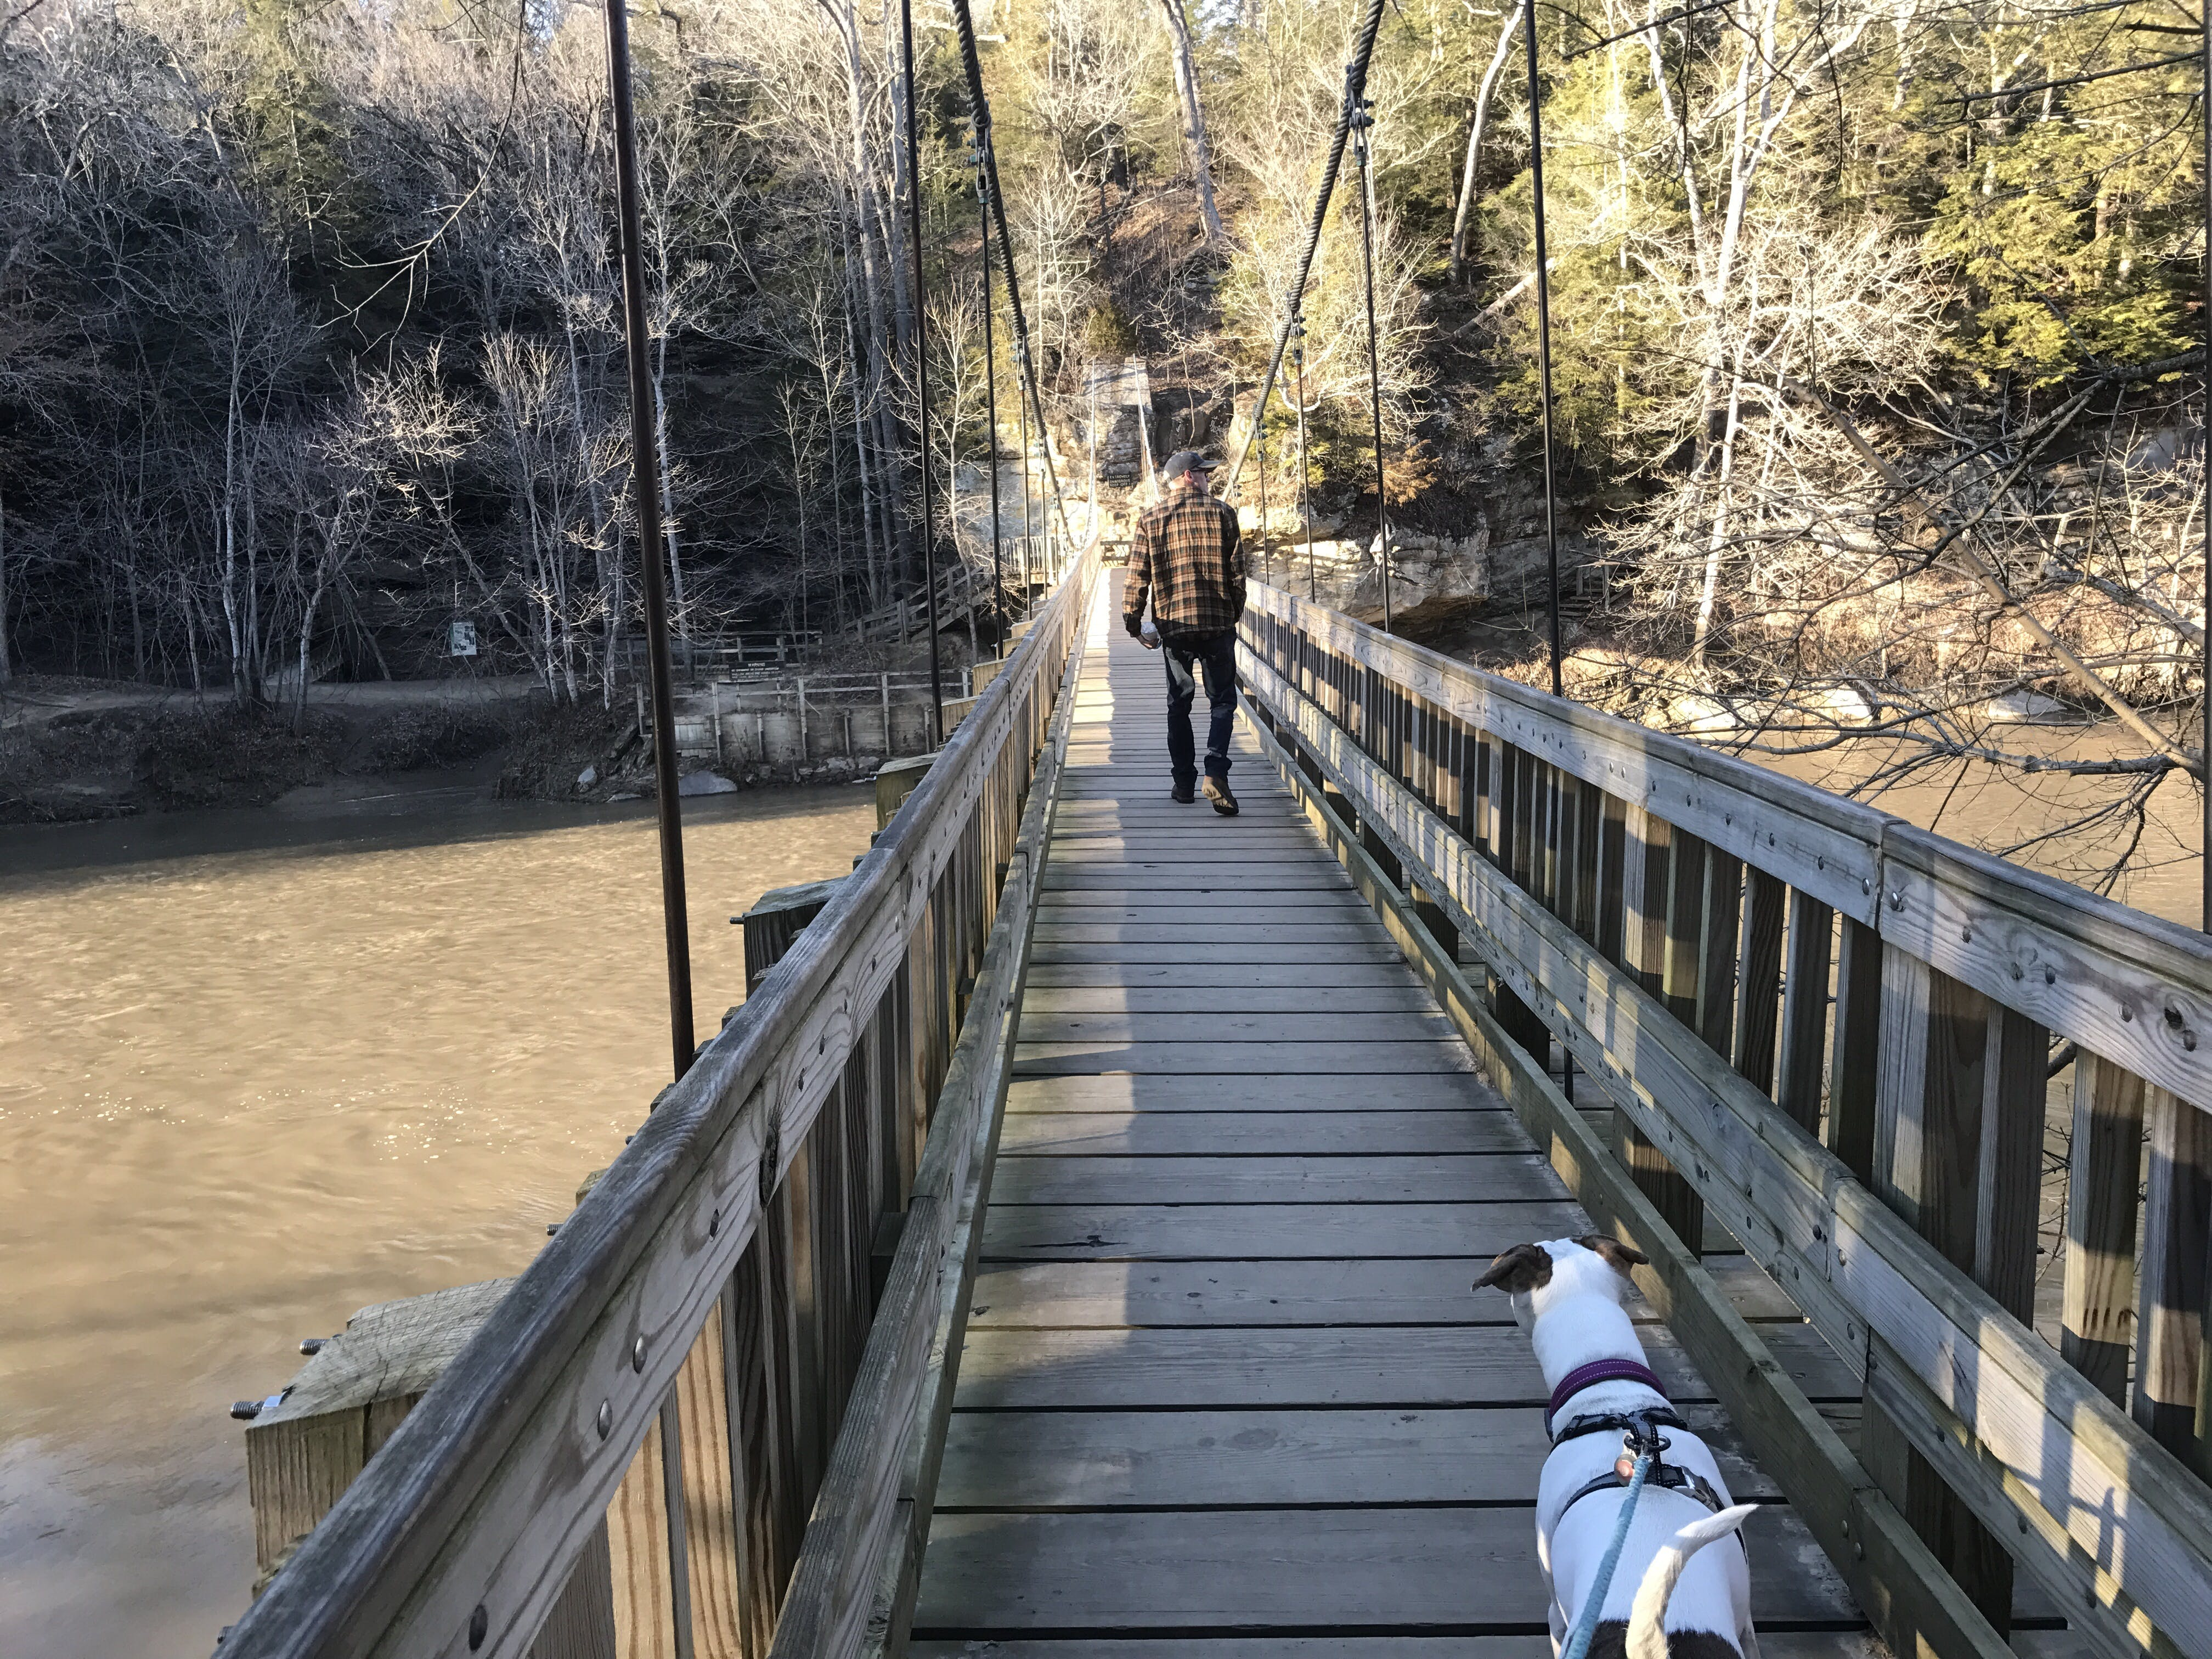 A man and a dog walk together across a river on a bridge at Turkey Run State Park